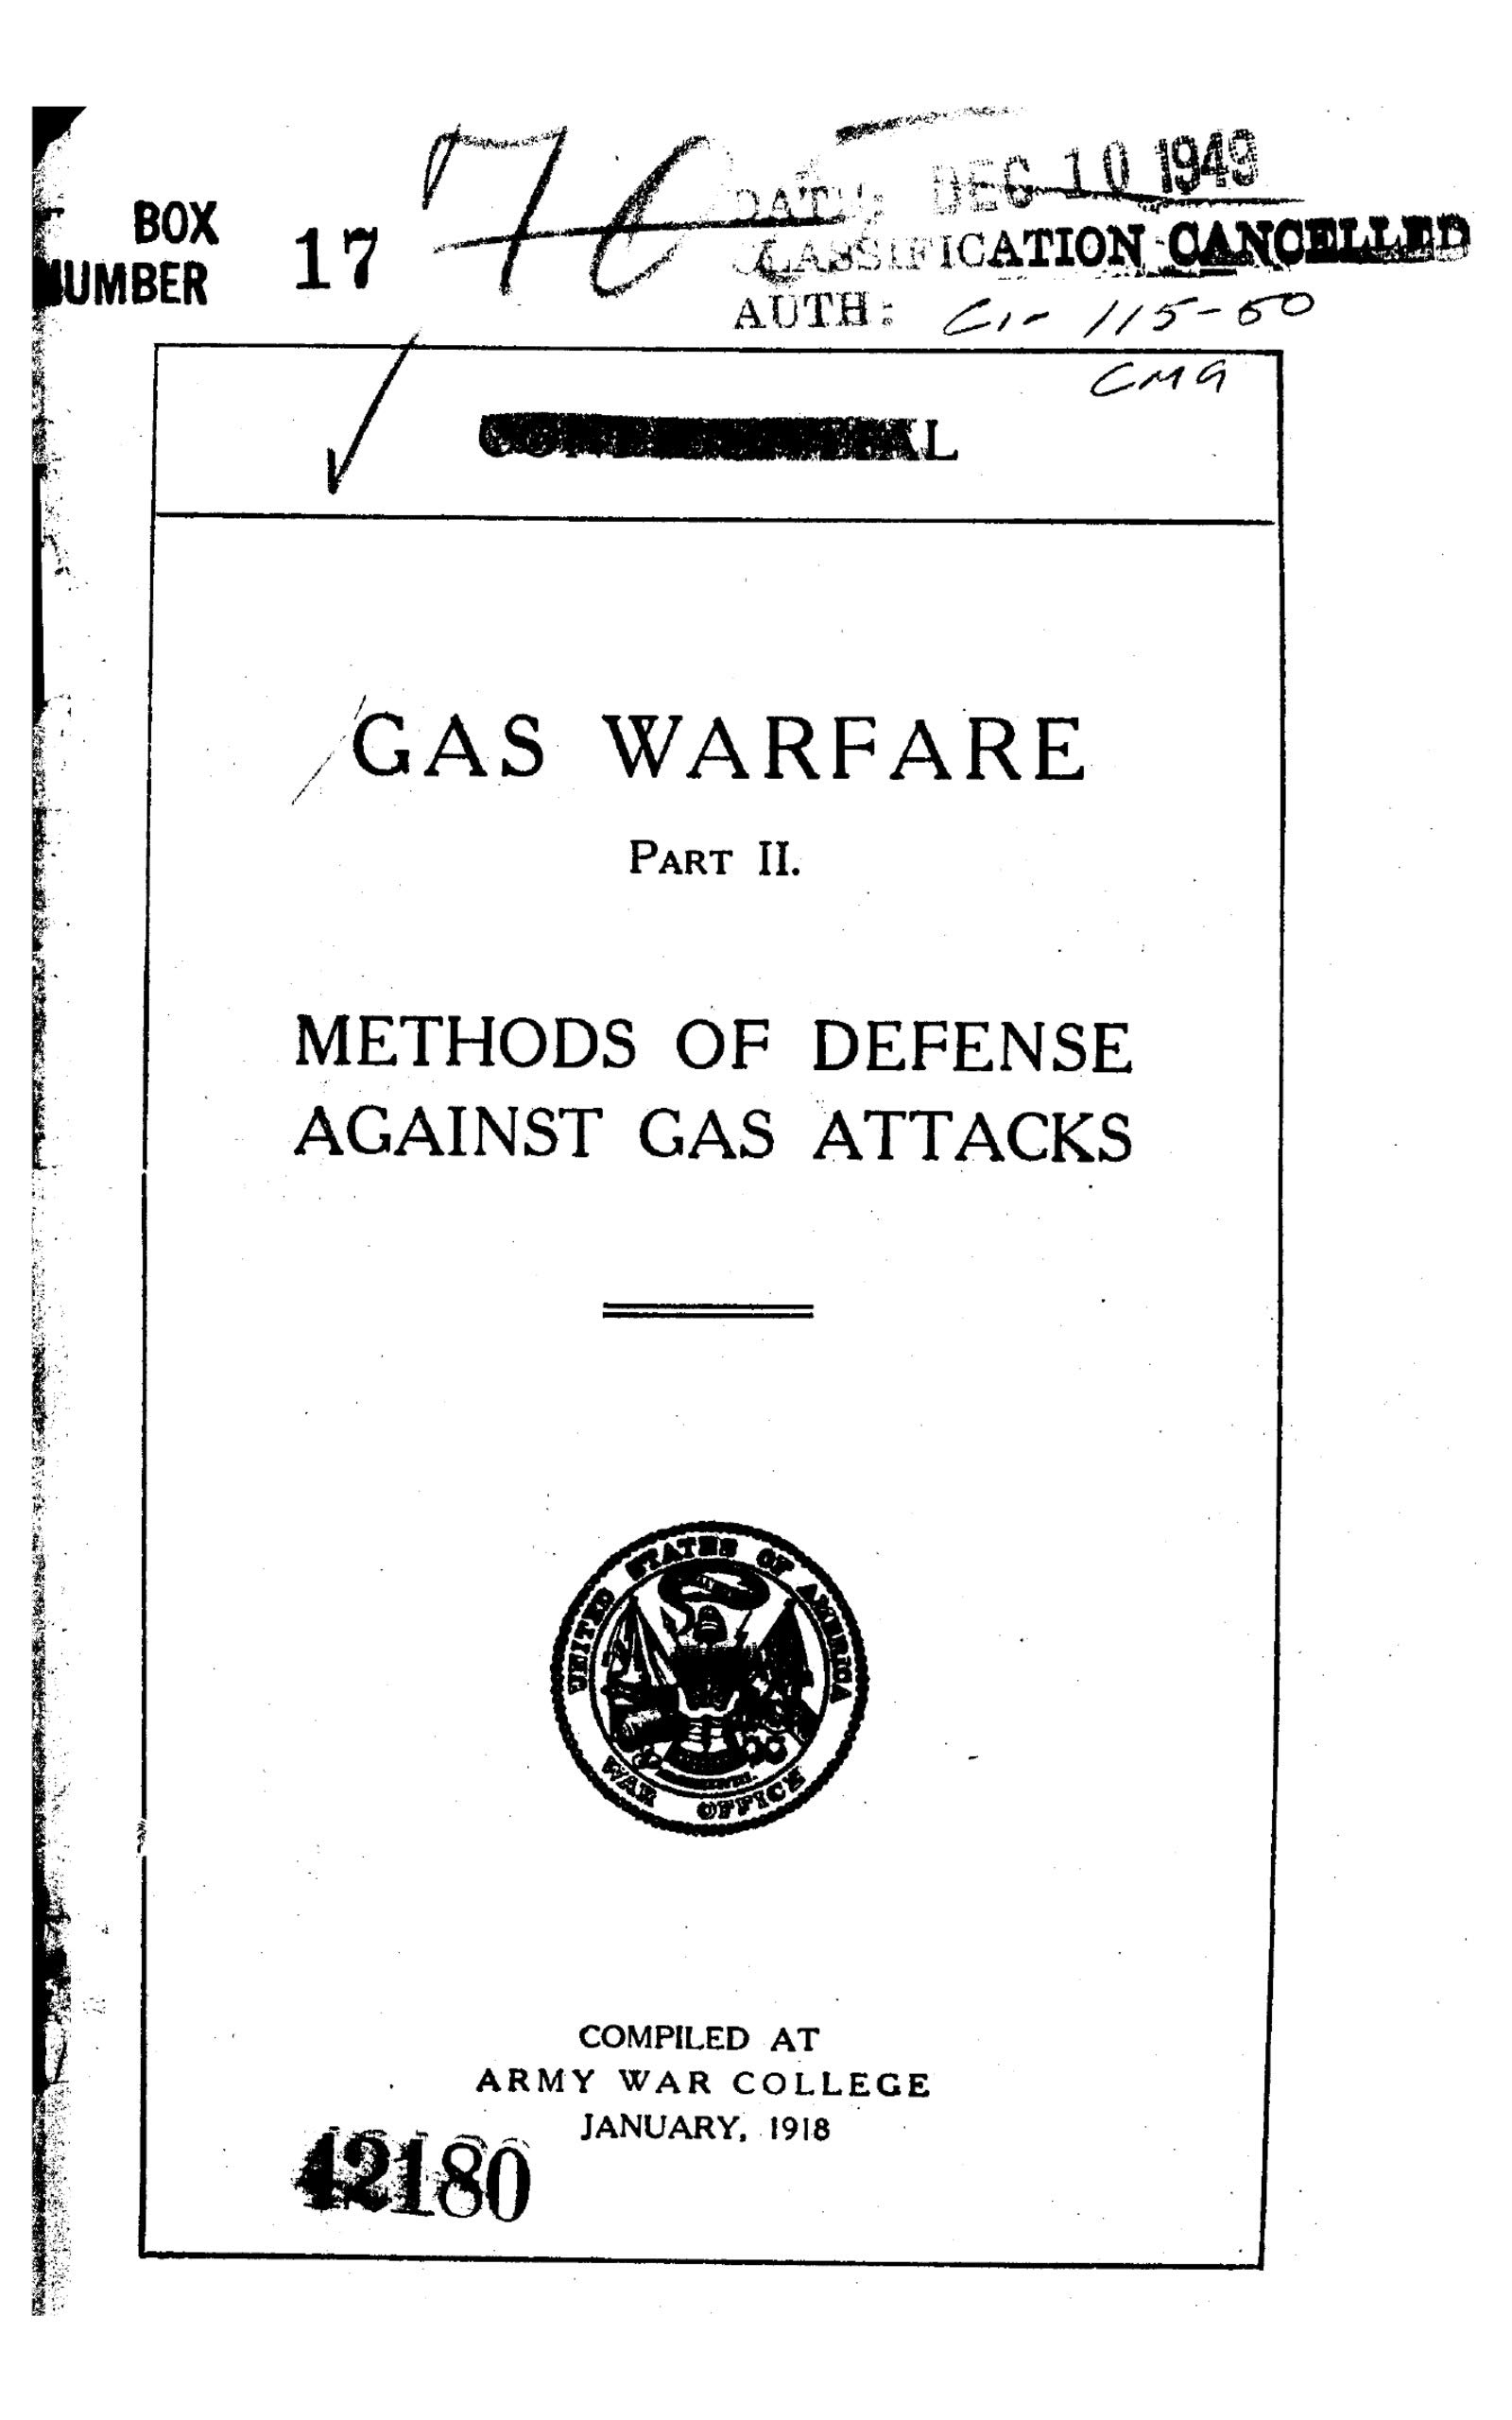 Gas Warfare. Part II, Methods of Defense Against Gas Attacks - Official War World I Army Field Manual, Publication Date 1919